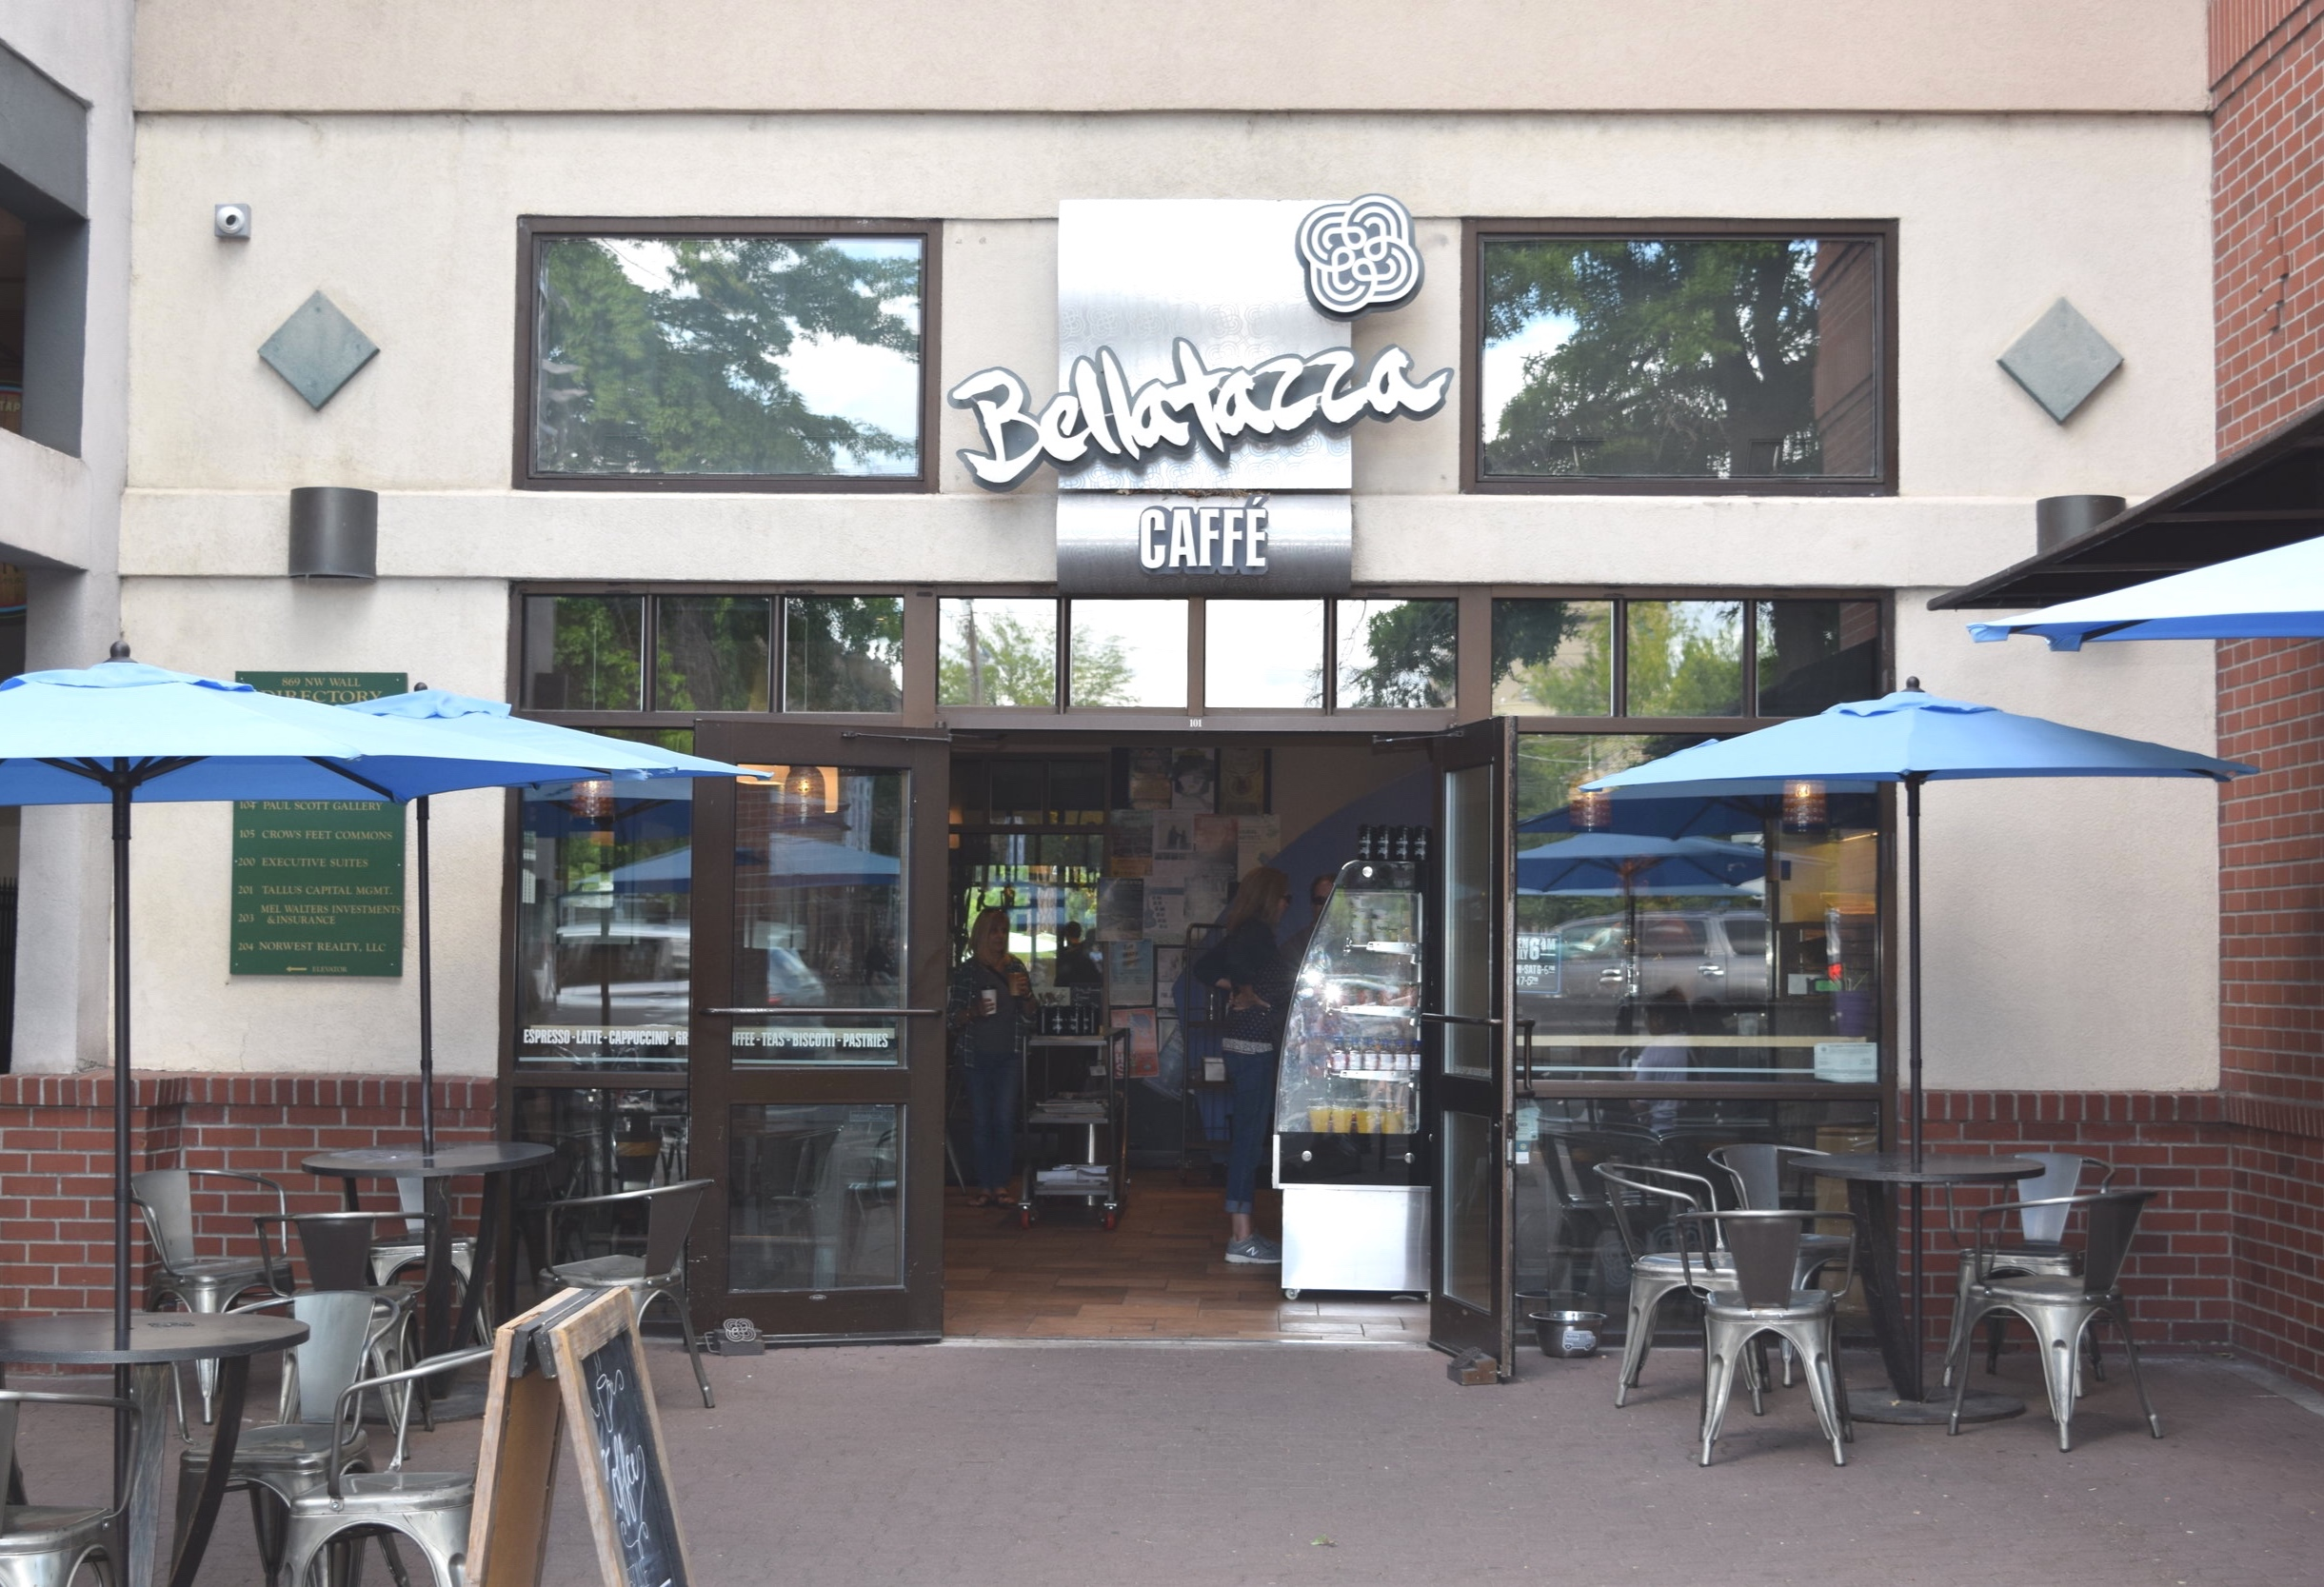 Bellatazza - NW Wall St., Bend, OROfficial BYOC Bend Supporting Business since May 2019BYOC for a $0.25 discountBellatazza is located in downtown Bend and has been committed to fostering relationships between their employees, local bakeries, customers and the community for over 20 years. Bring in your own cup and try a cup of coffee grown from one of Bellatazza's patterning plantations in Guatemala.